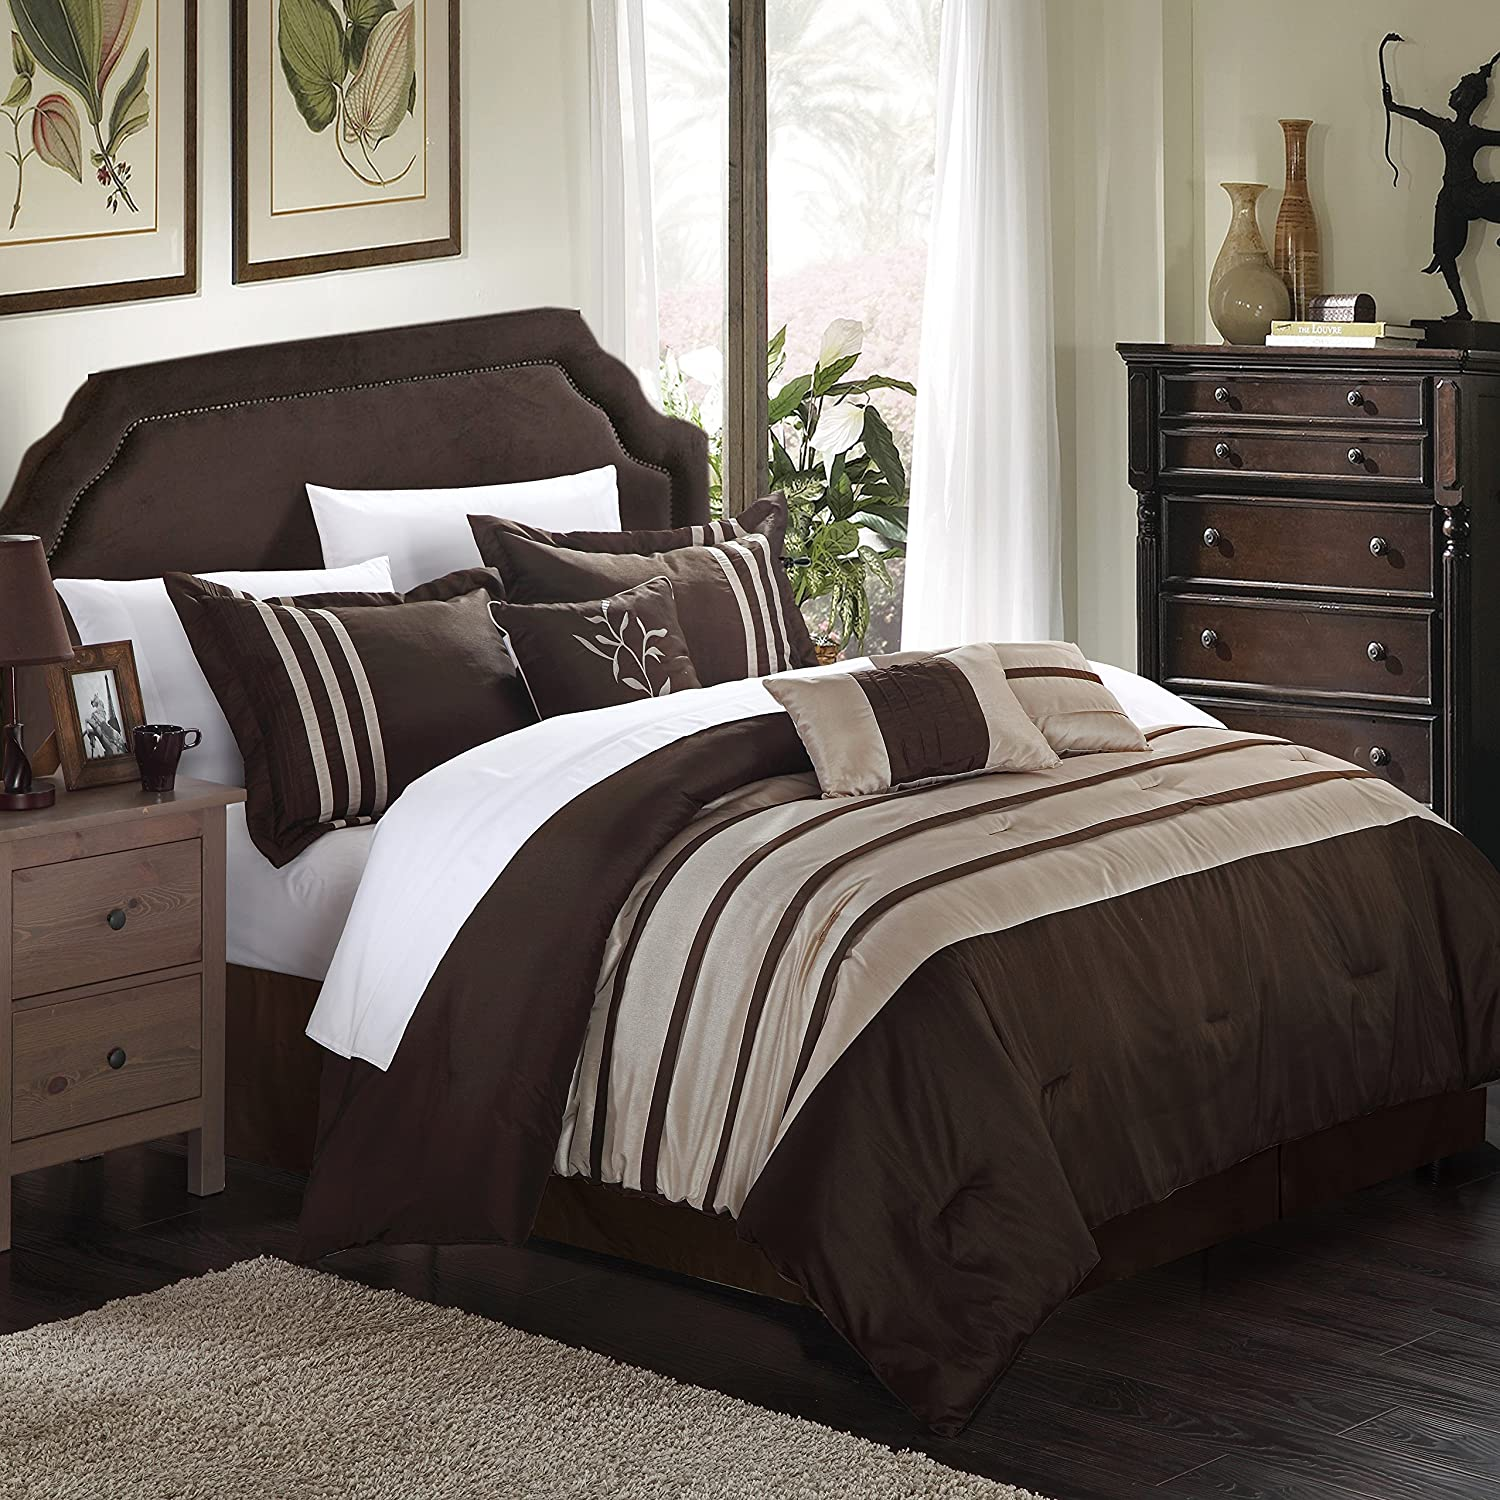 sets taupe queen bedding lace vintage expand p set click to t comforter